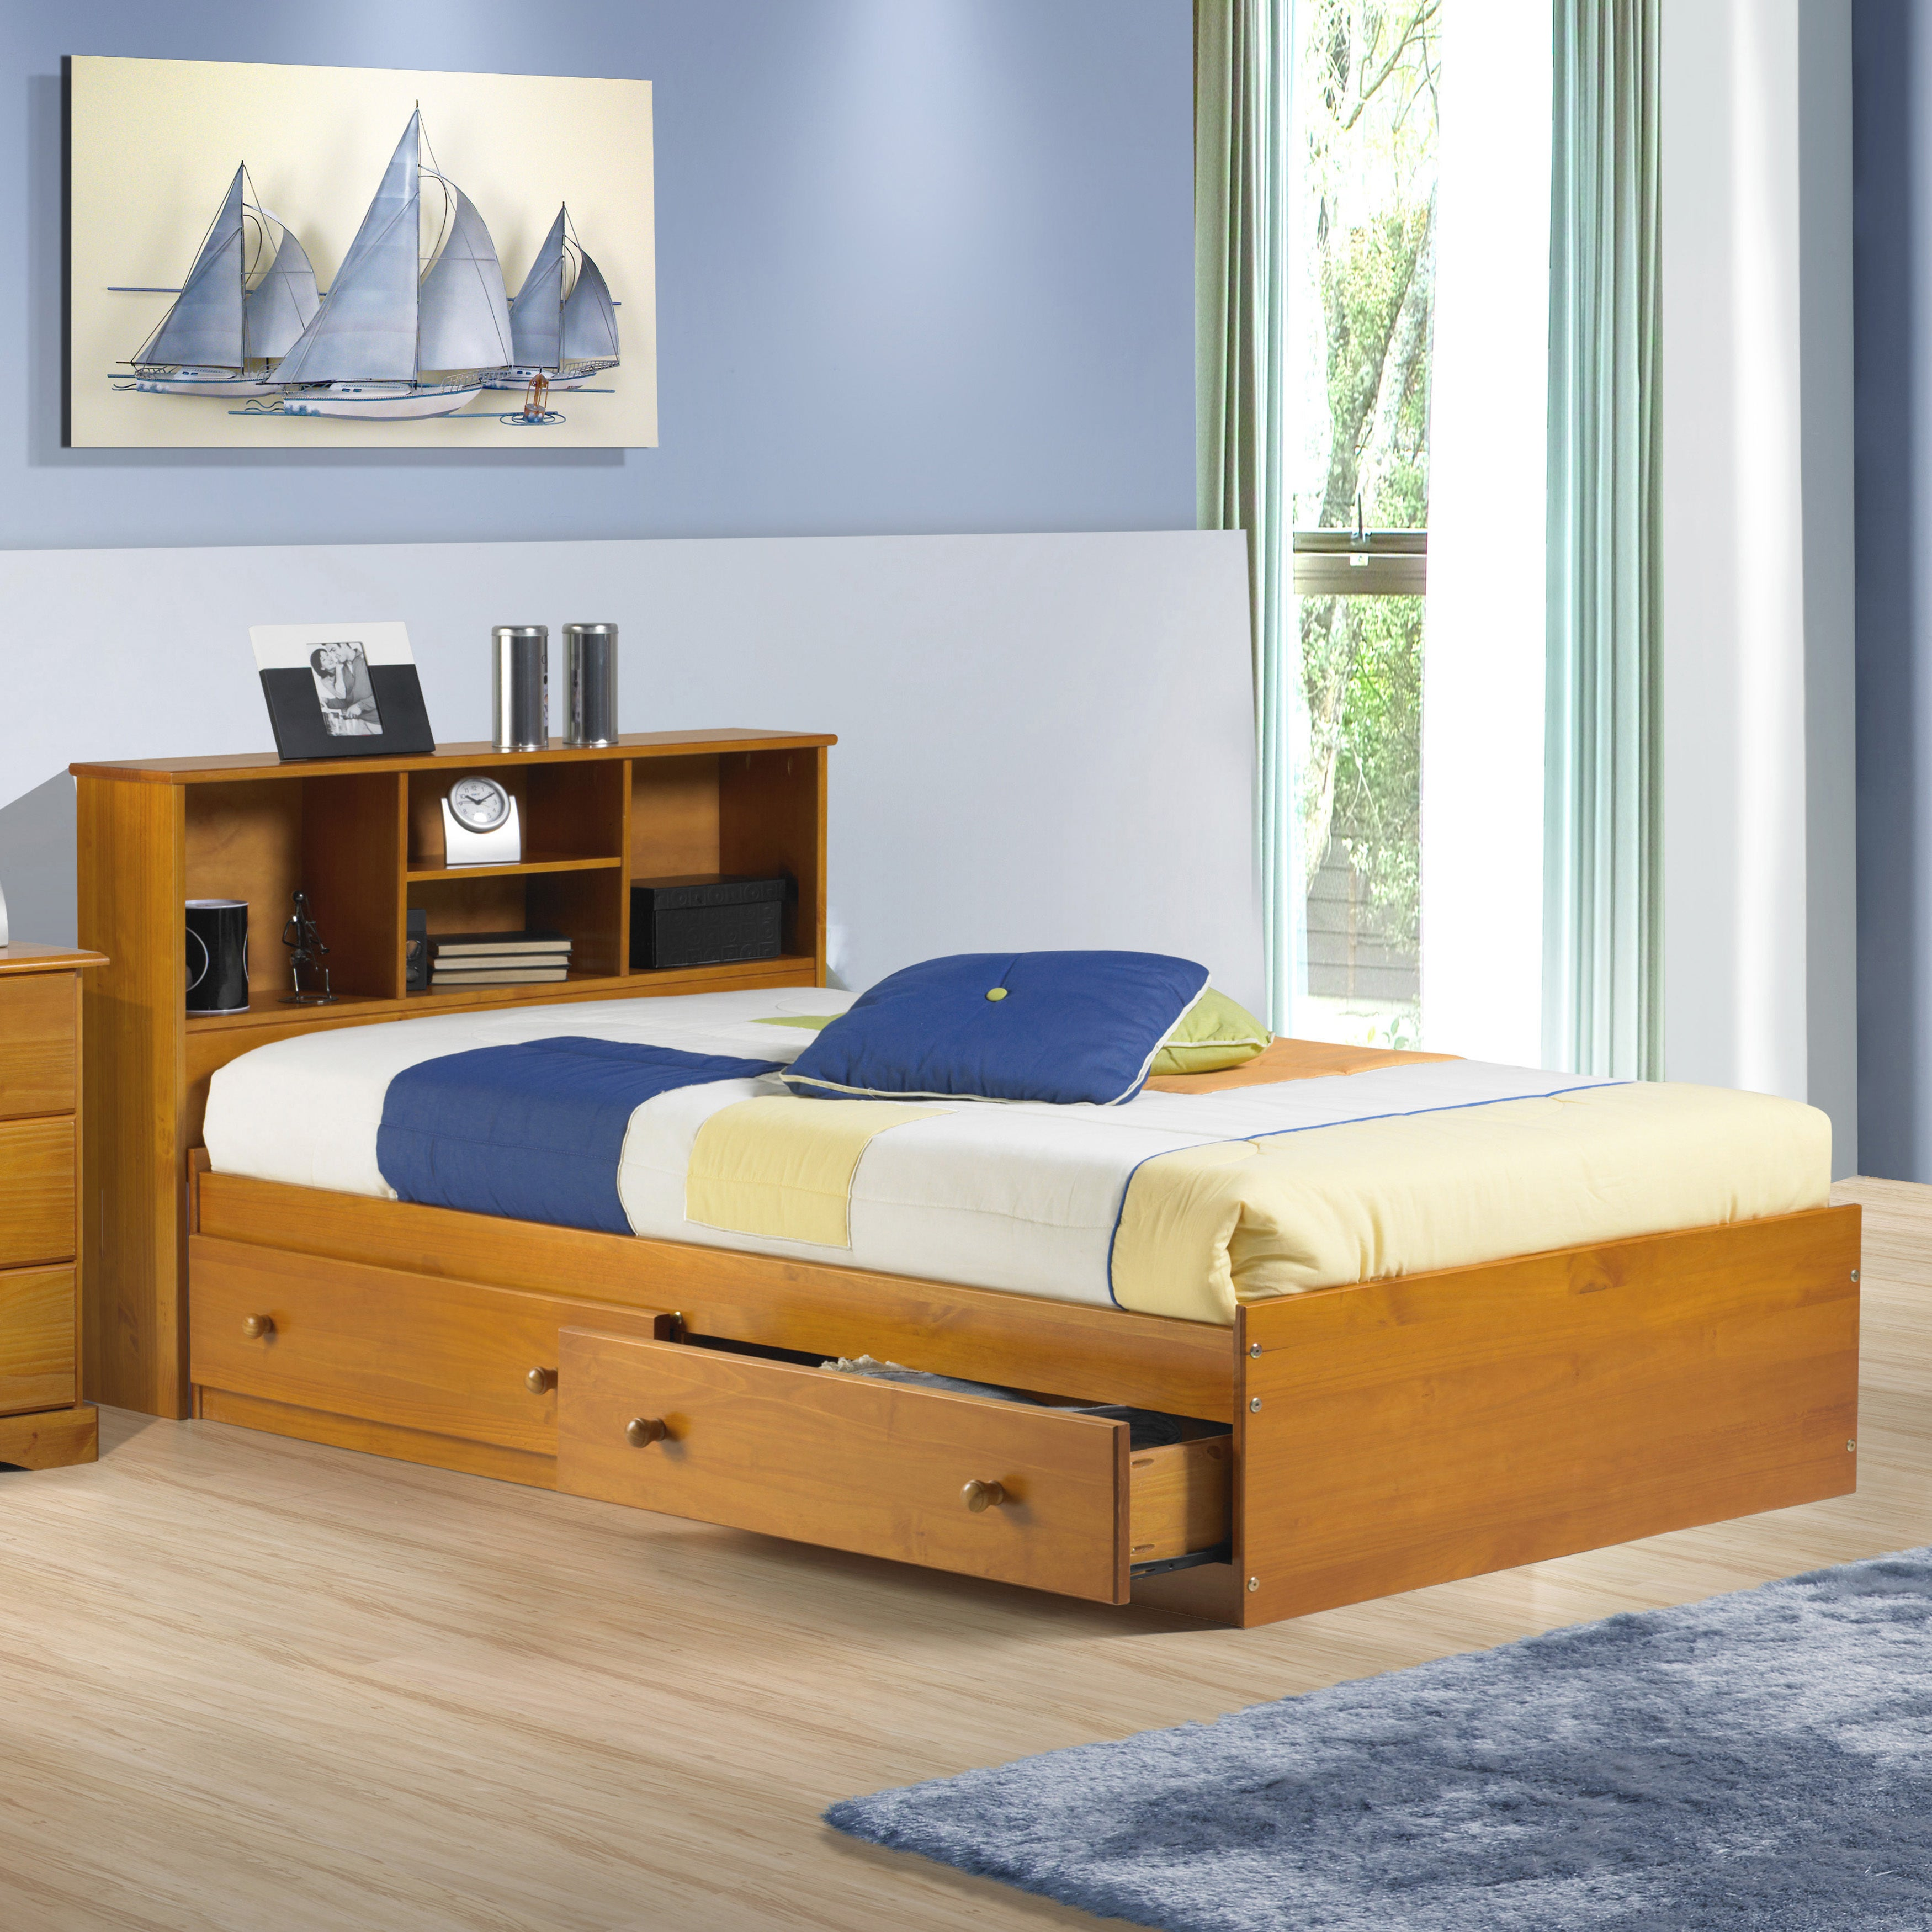 Overstock Bedroom Furniture Kids Furniture Guides Overstockcom